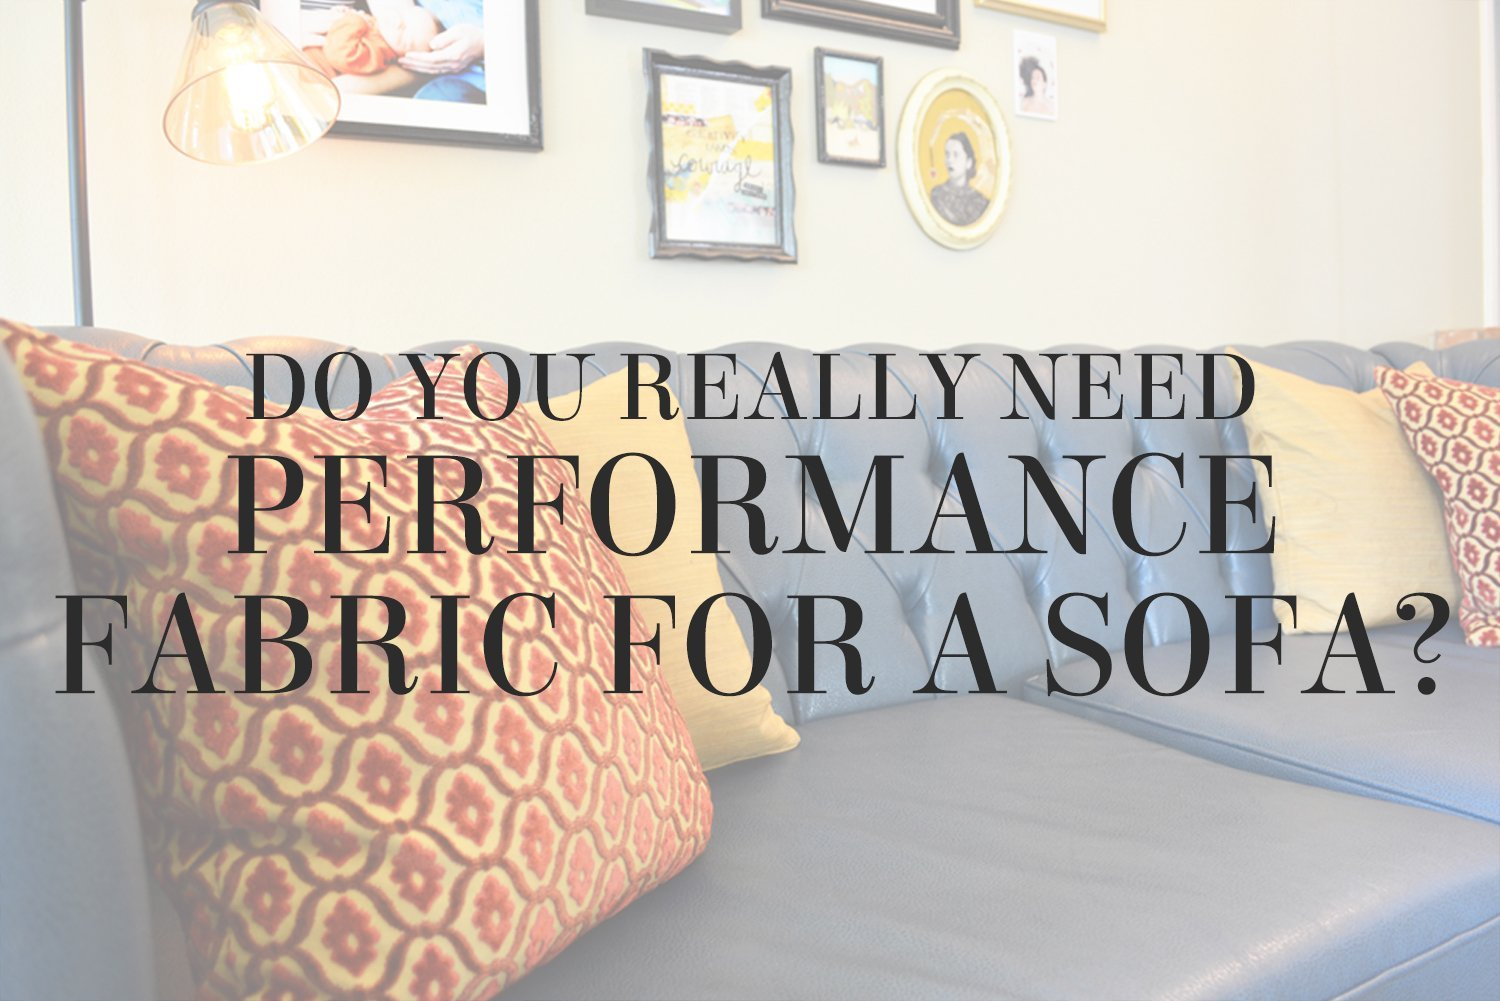 Do you REALLY need performance fabric for a sofa? Get the basics on performance fabrics from interior designer Lesley Myrick.